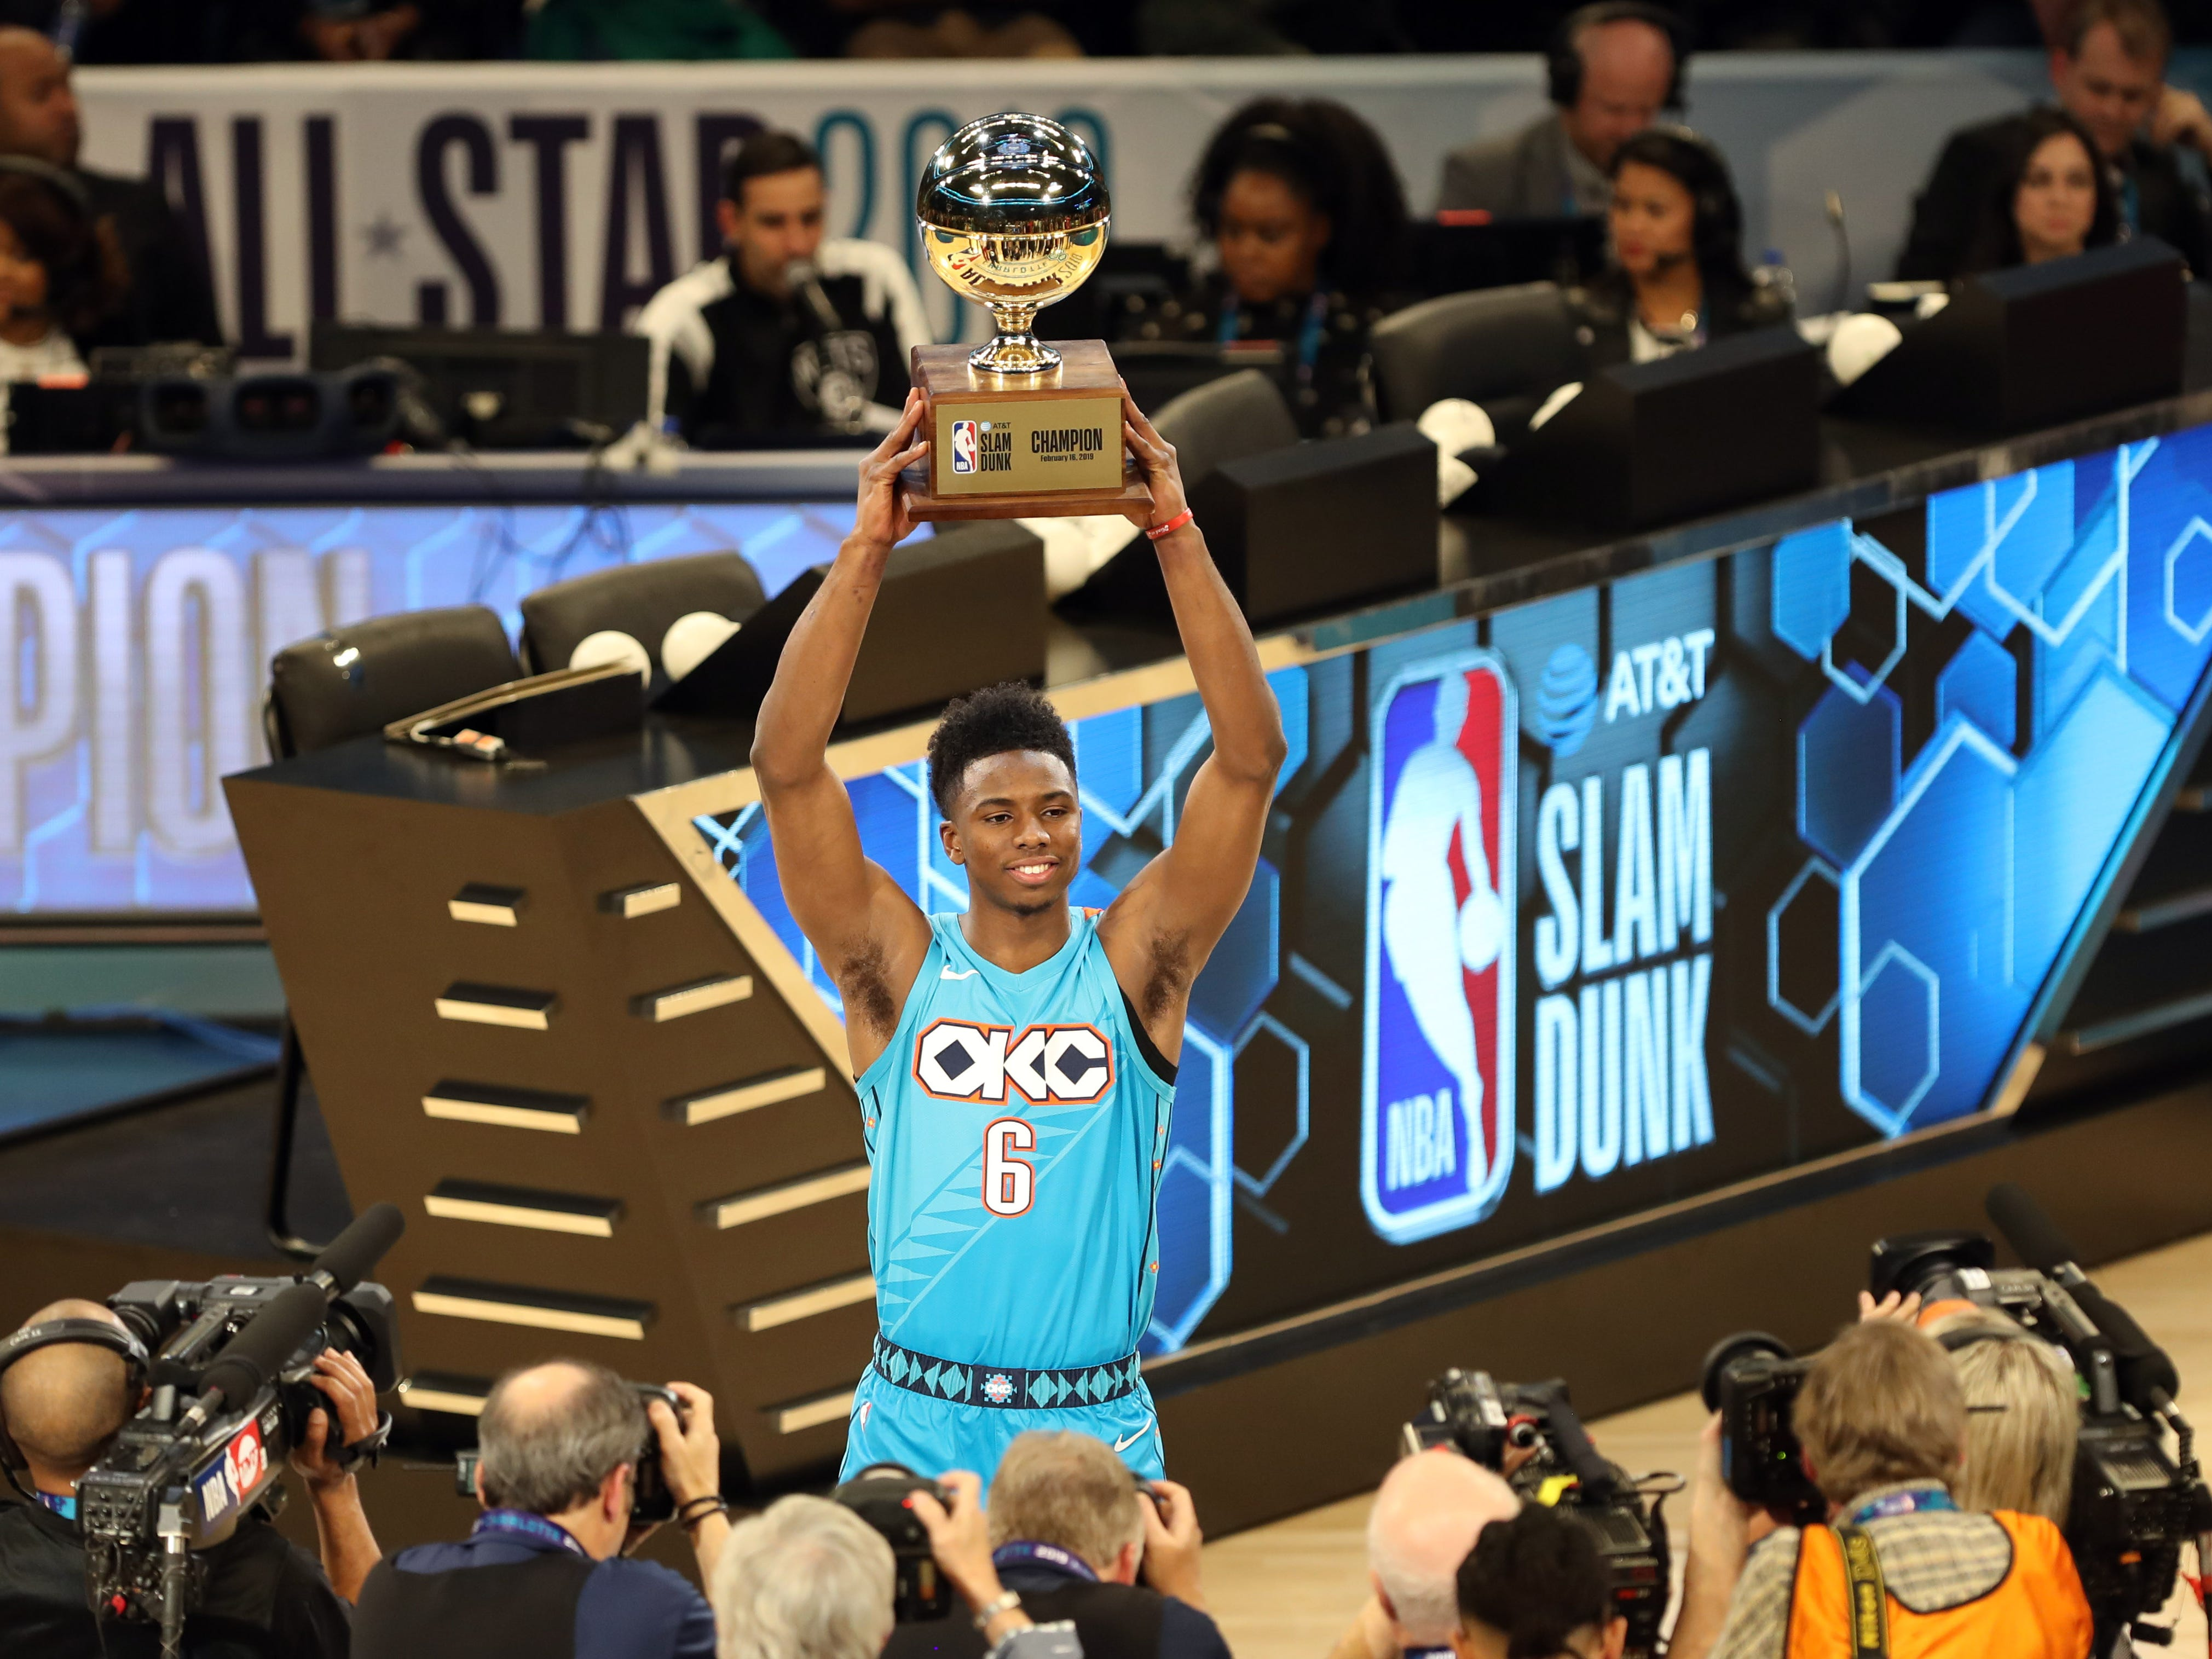 Hamidou Diallo celebrates after winning the Slam Dunk Contest.